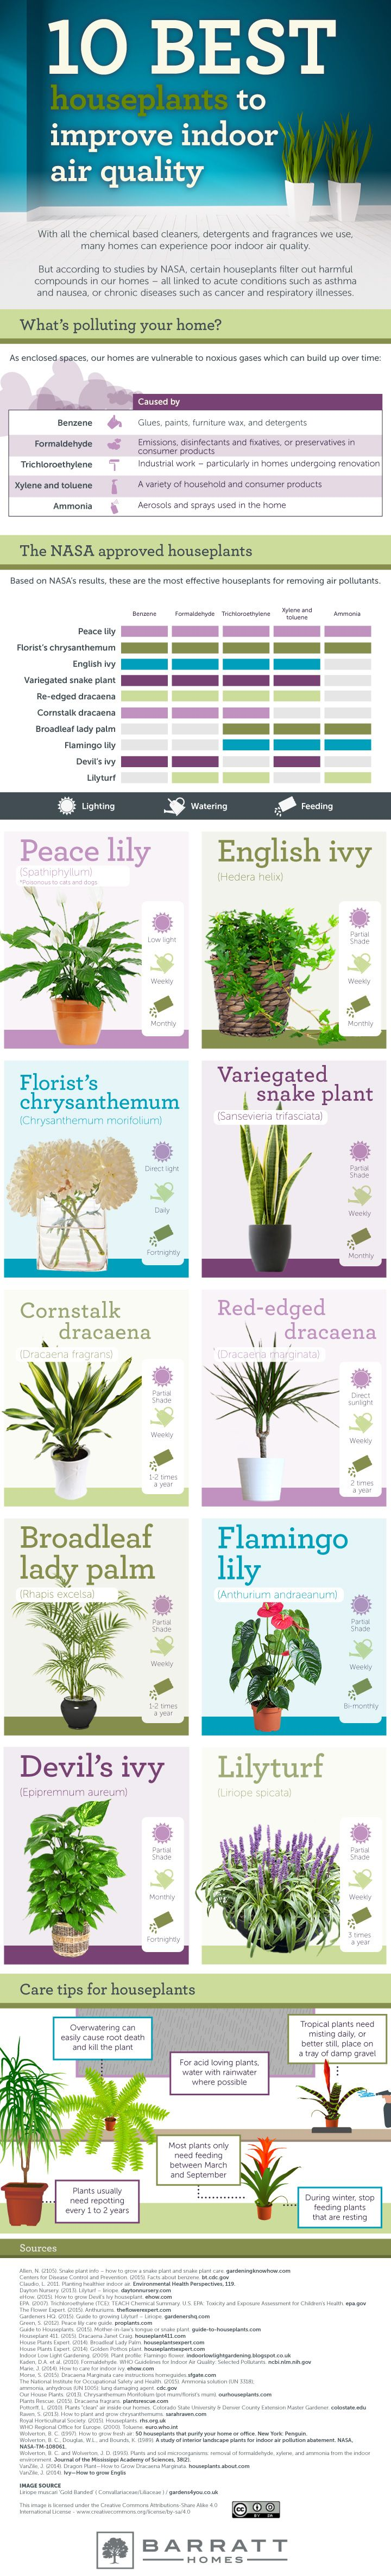 INFOGRAPHIC: These pollution-busting houseplants will have you breathing easier | Inhabitat - Sustainable Design Innovation, Eco Architecture, Green Building